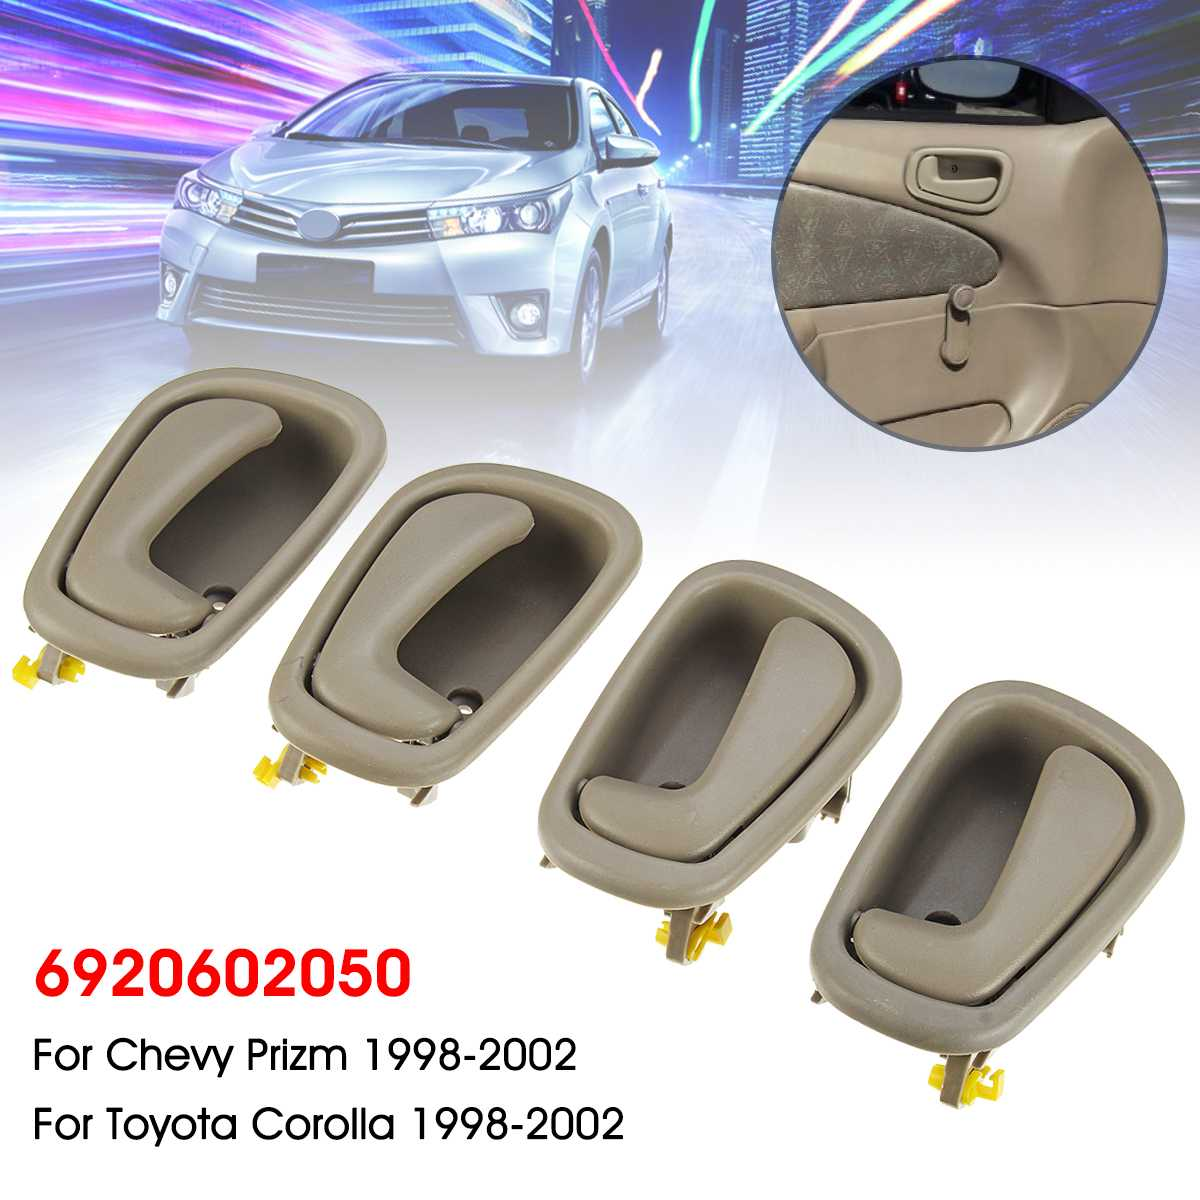 Interior Inner Inside Door Handle Beige Set of 4 Kit for 98-02 Toyota Corolla